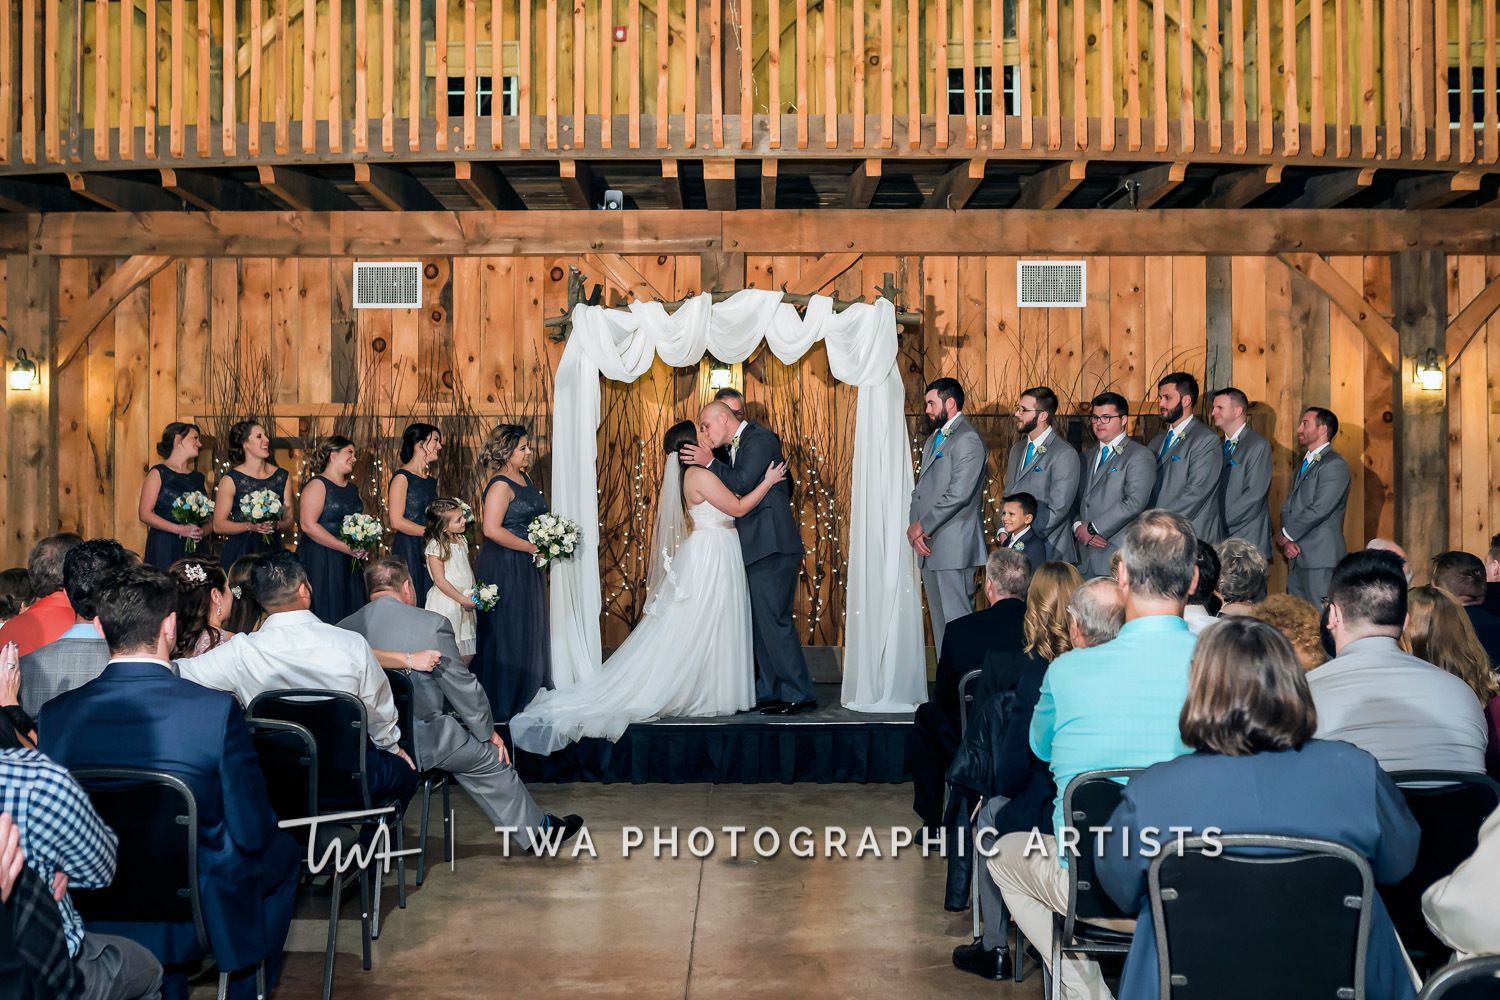 Chicago-Wedding-Photographer-TWA-Photographic-Artists-County-Line-Orchard_Bomba_Purcell_MiC_DR-0363